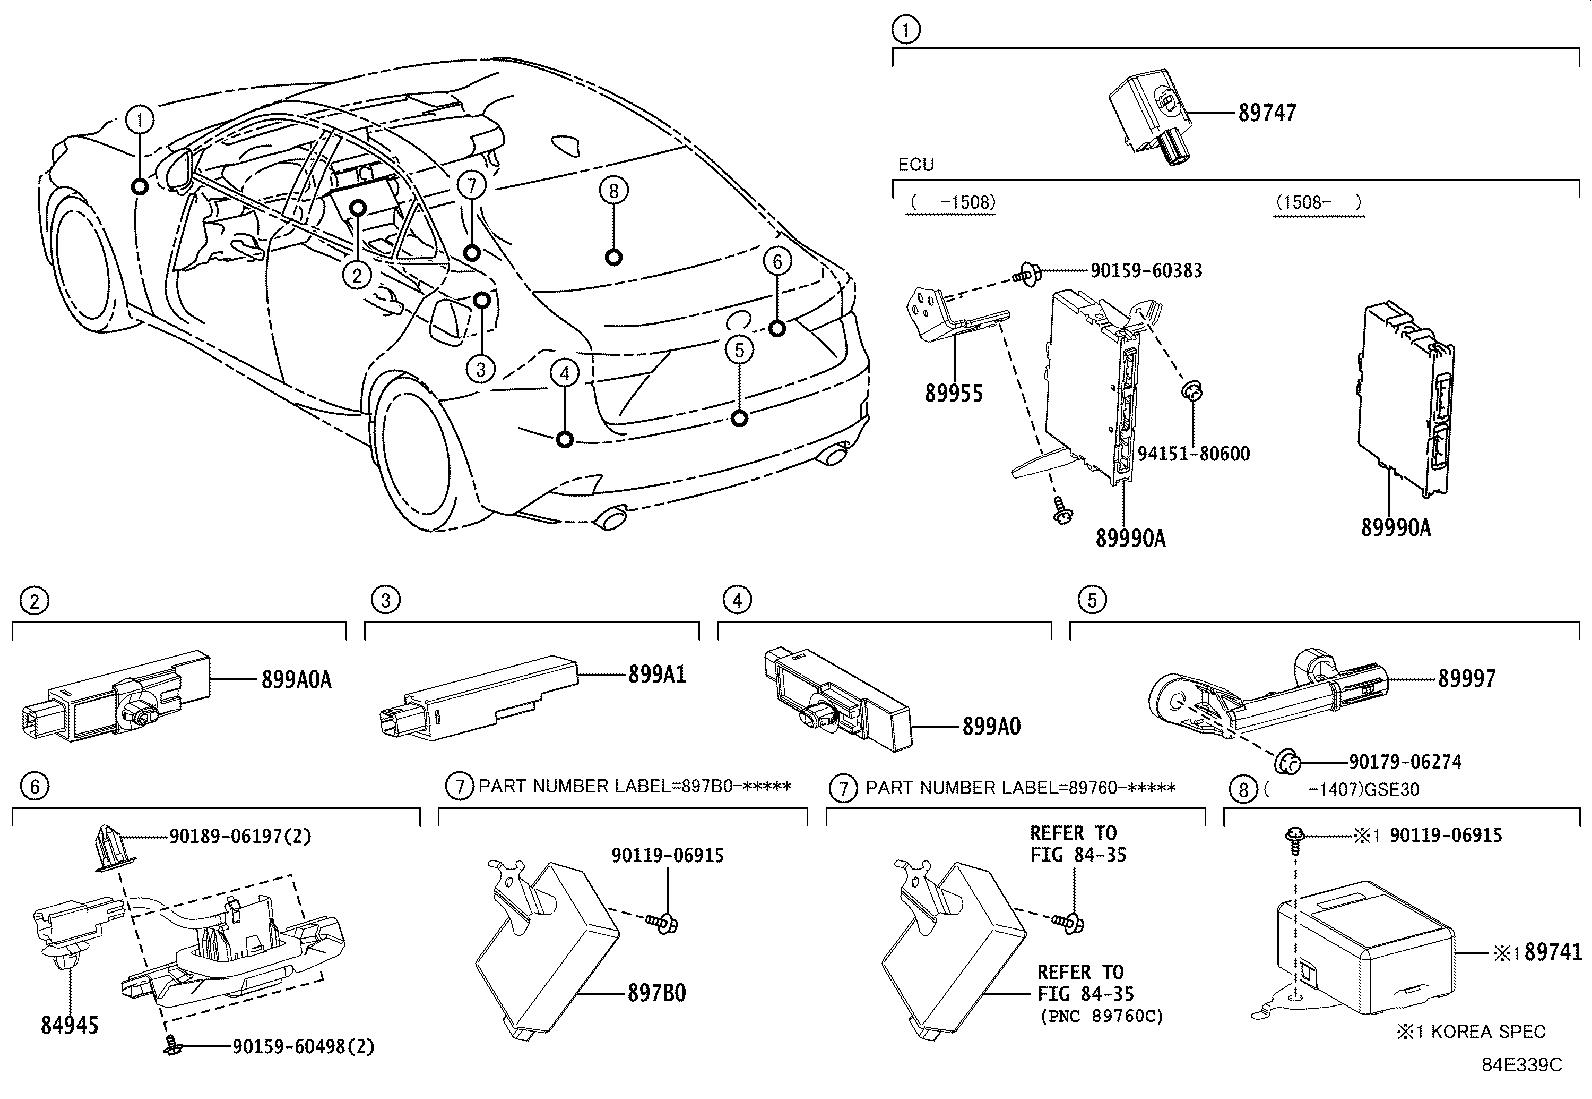 Lexus IS 250 Receiver assembly, electrical key & tpms